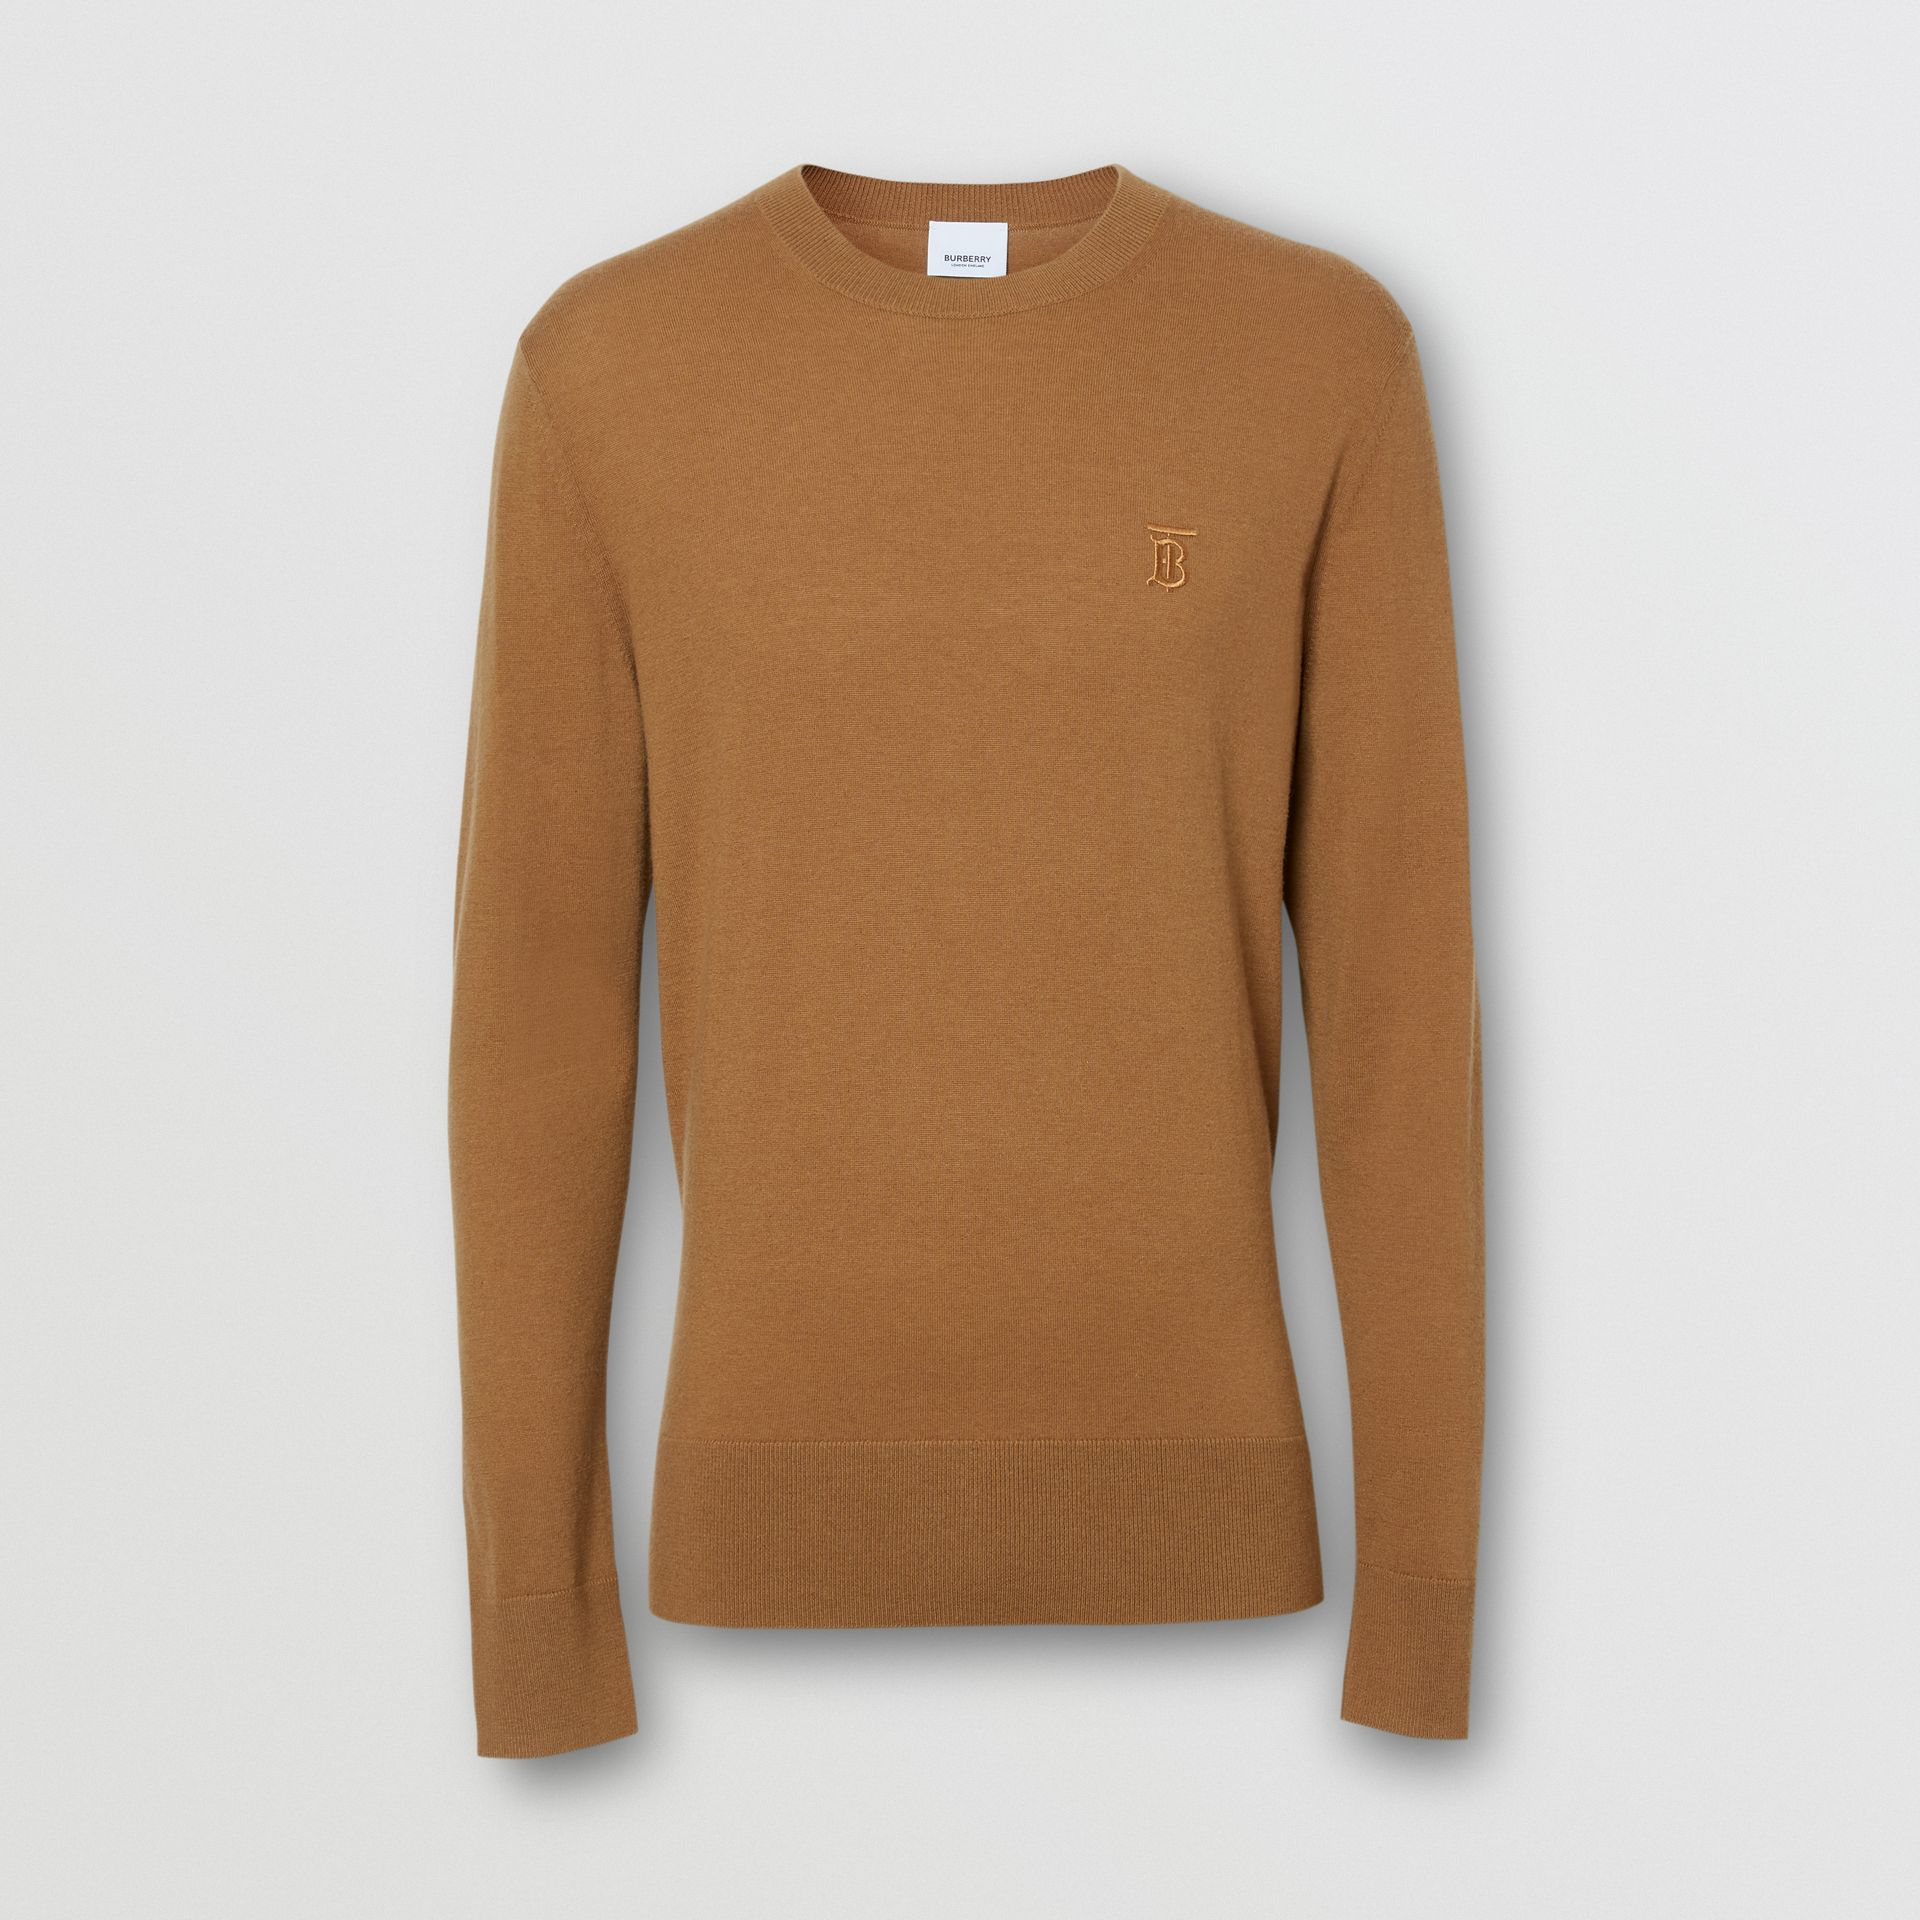 Monogram Motif Cashmere Sweater in Maple - Men | Burberry United Kingdom - gallery image 3